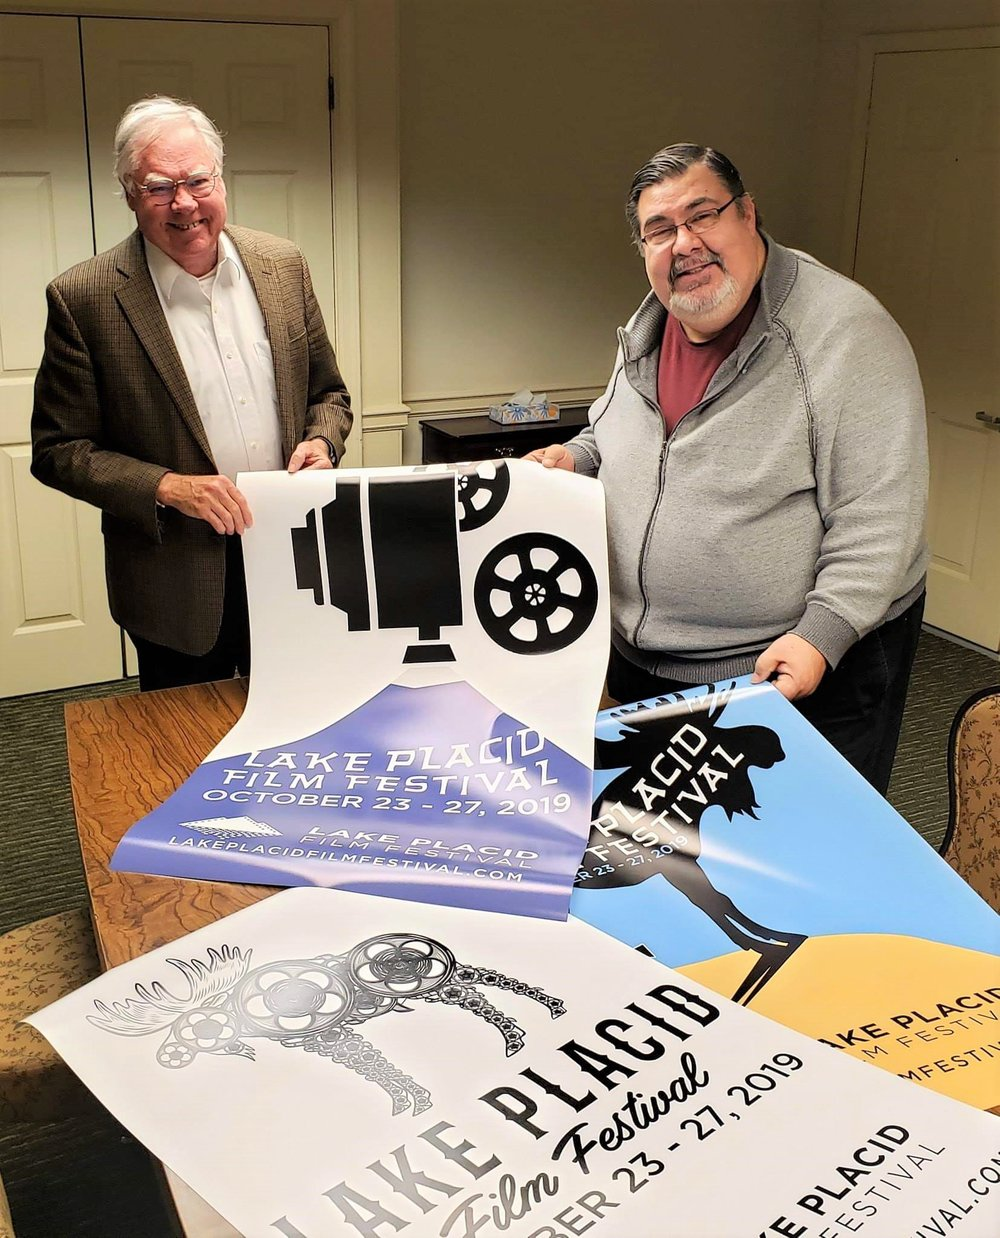 It takes time… - to create a film festival for 2019 that will be better than the last!  Gary (left) and Nelson (right) take a break from another LPFF2019 Planning Meeting at the Desmond Hotel in Albany, NY.  Gary Smith is the 2019 Festival Director and Adirondack Film Society Vice-Chairman and Nelson Page is the Chairman & President of the Adirondack Film Society.